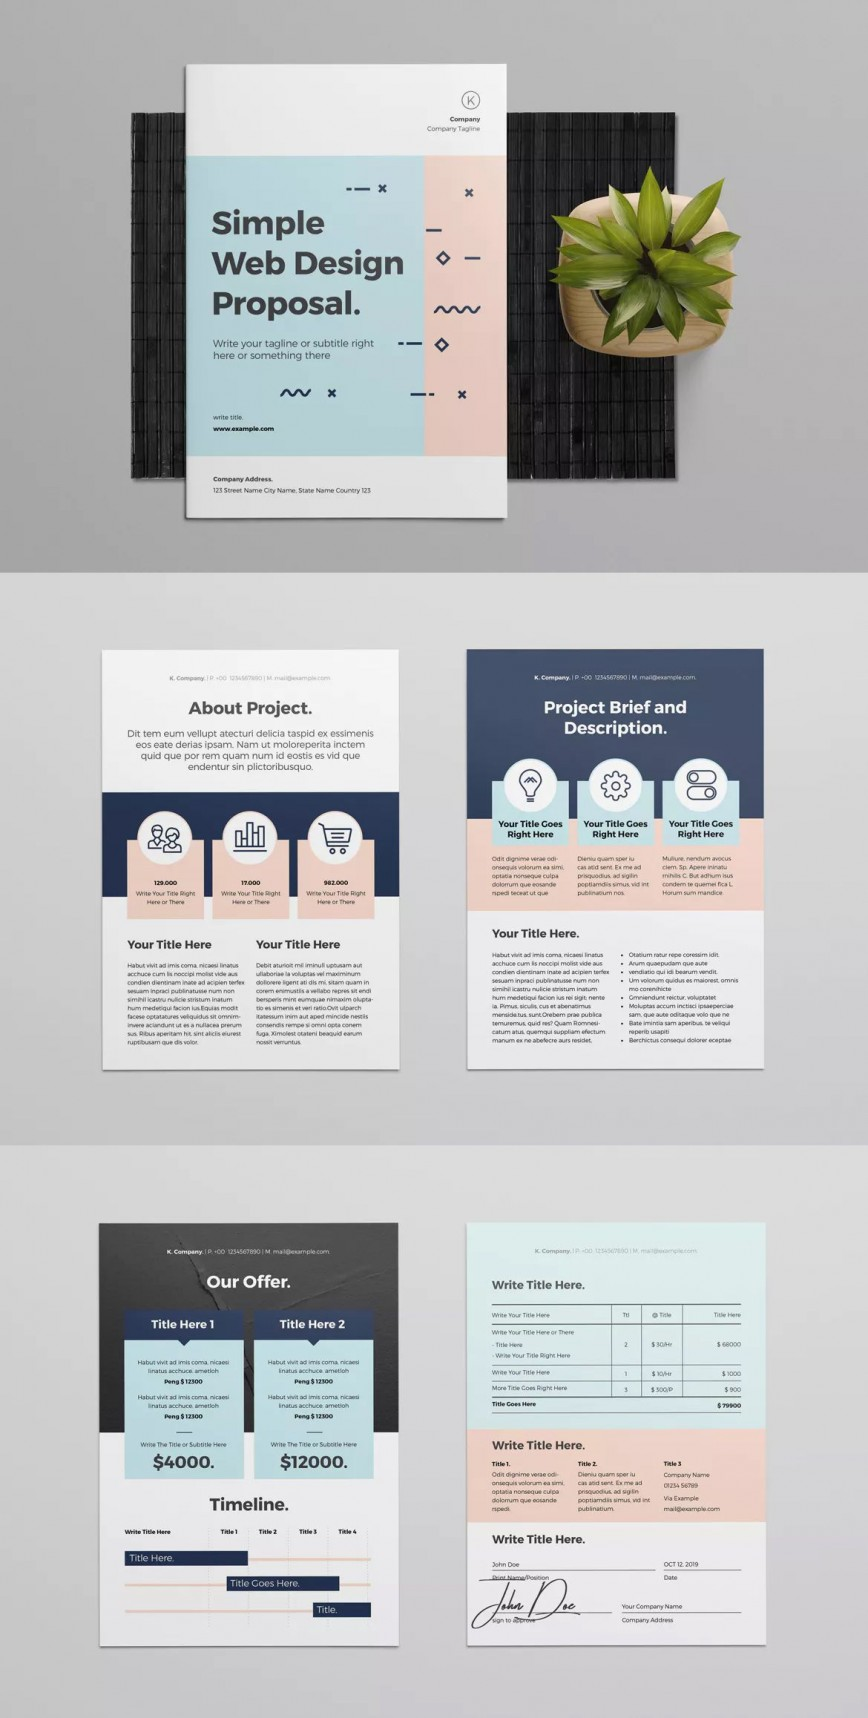 001 Amazing Web Design Proposal Template Indesign High Resolution